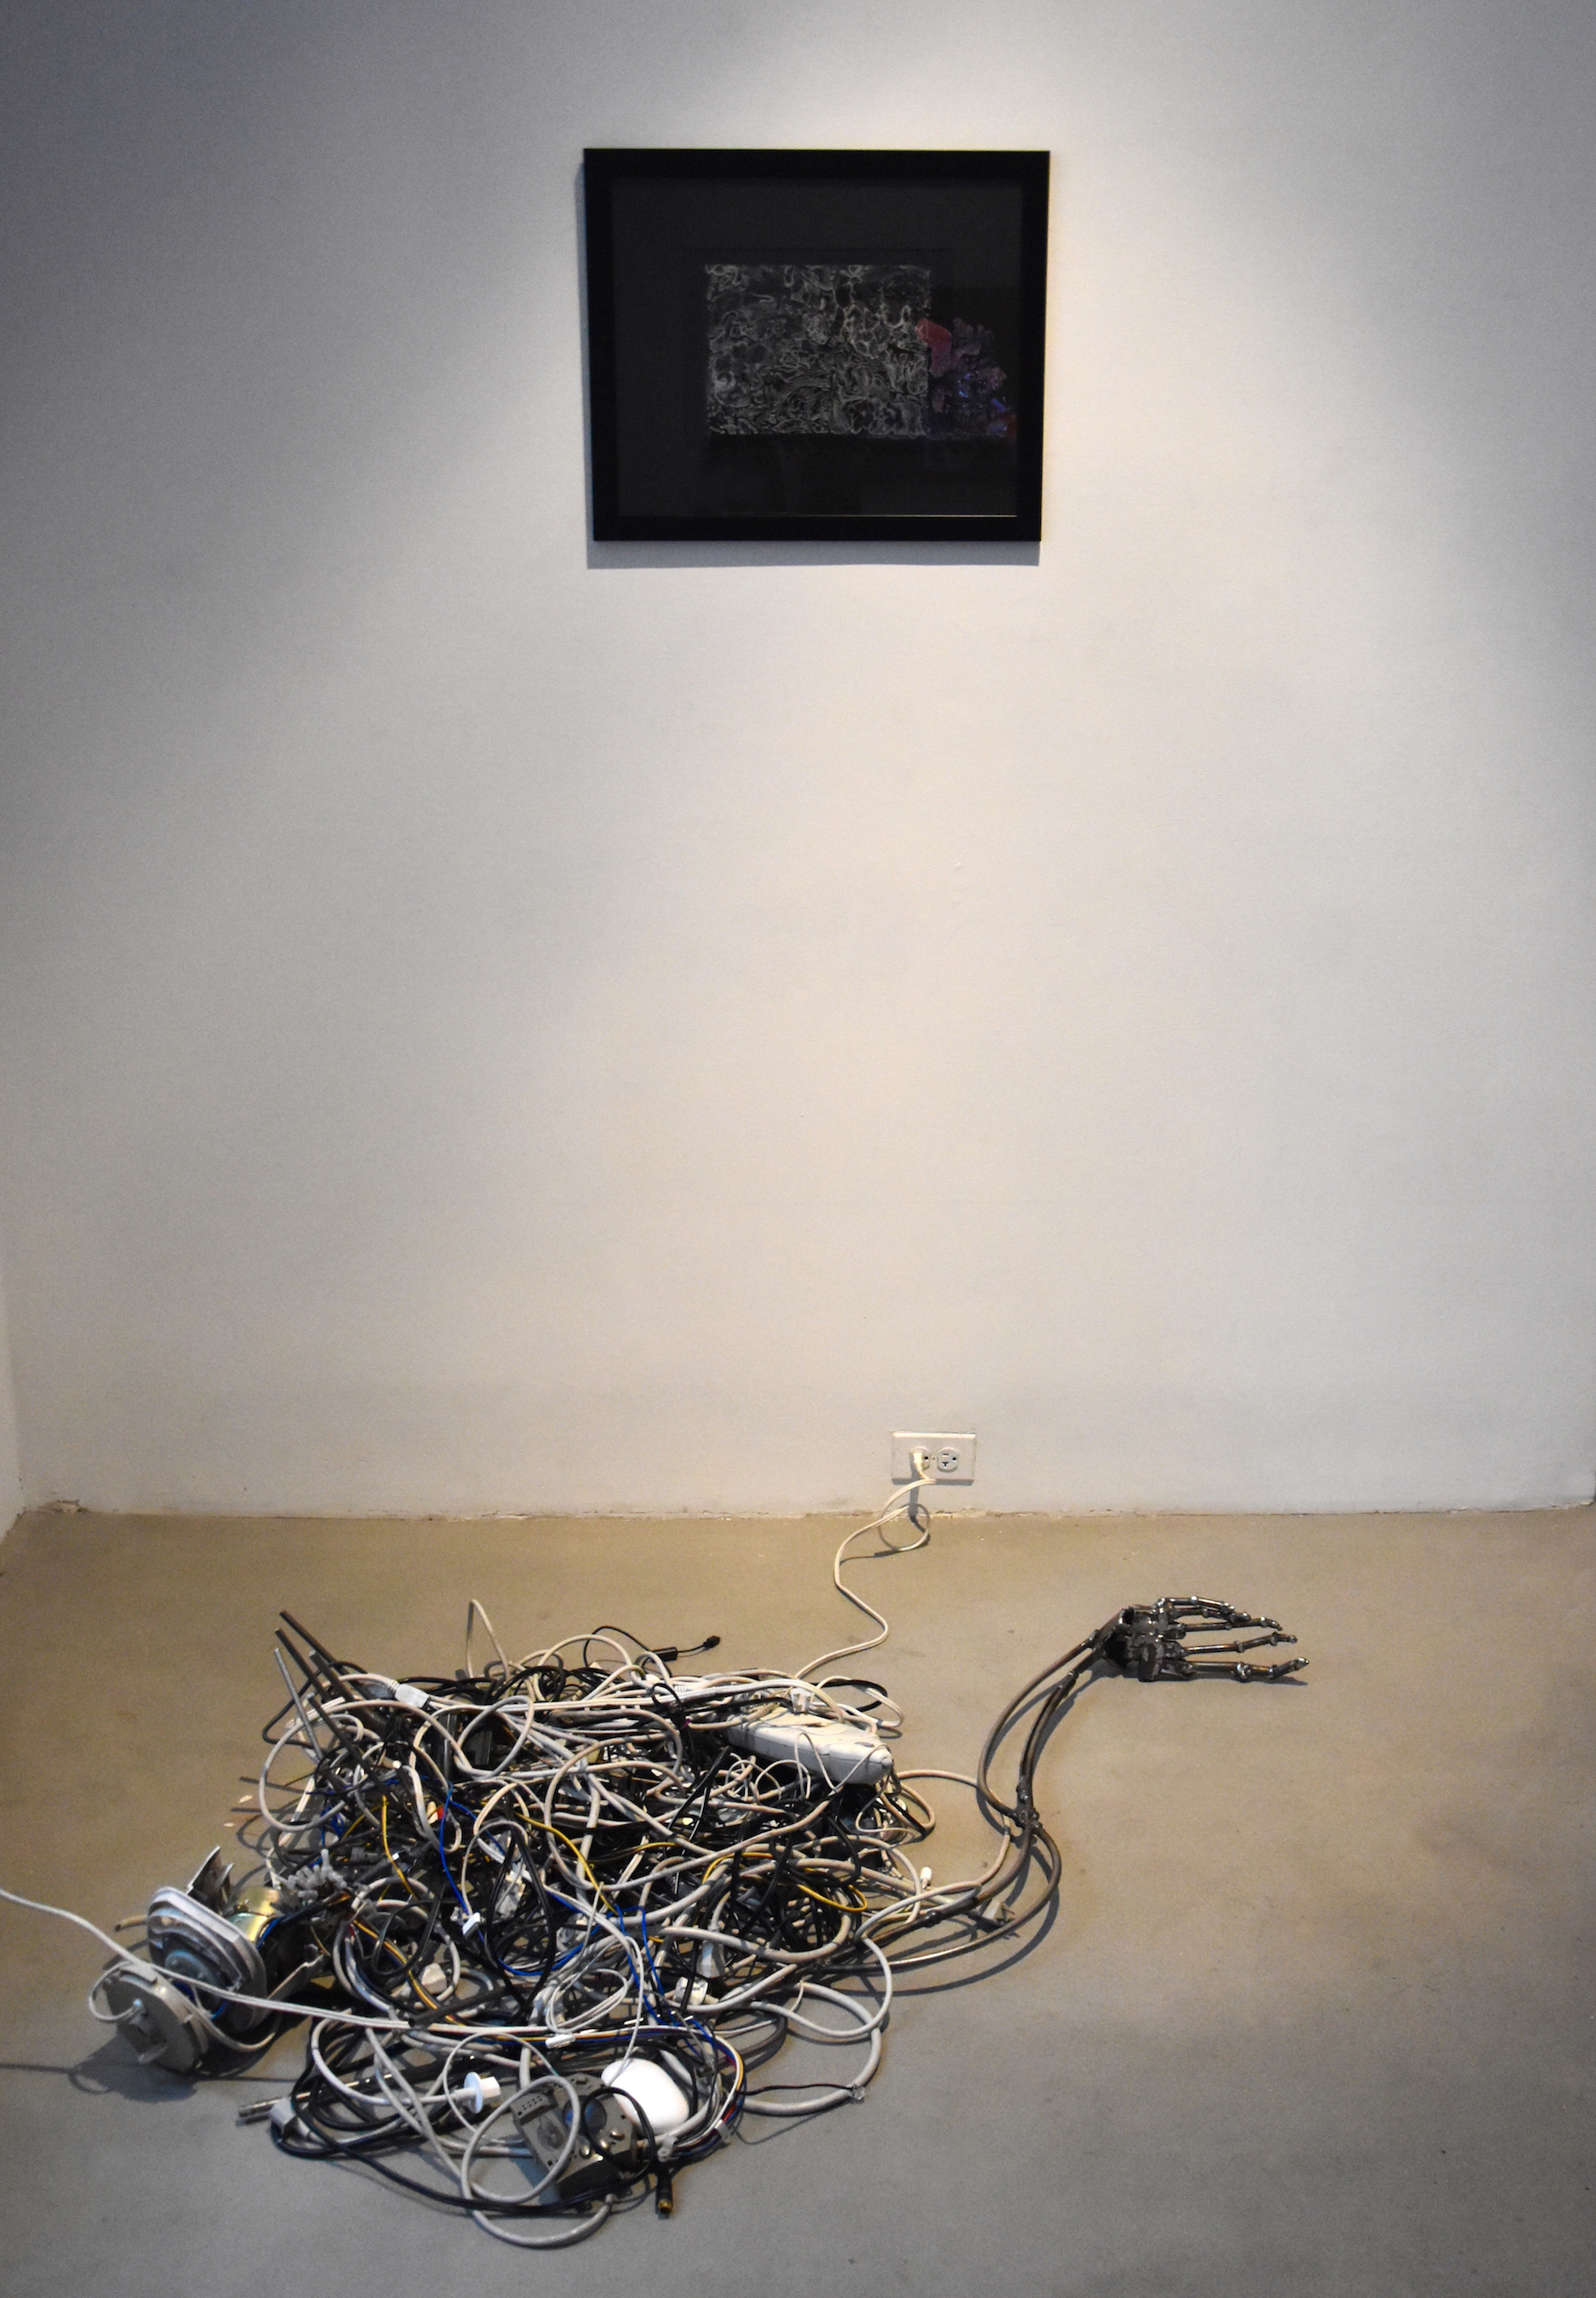 10. GABRIELLE VITOLLO_GUTS AND TIME COLLAPSE INSTALLATION_MIXED MEDIA AND ETCHING_2016.jpg